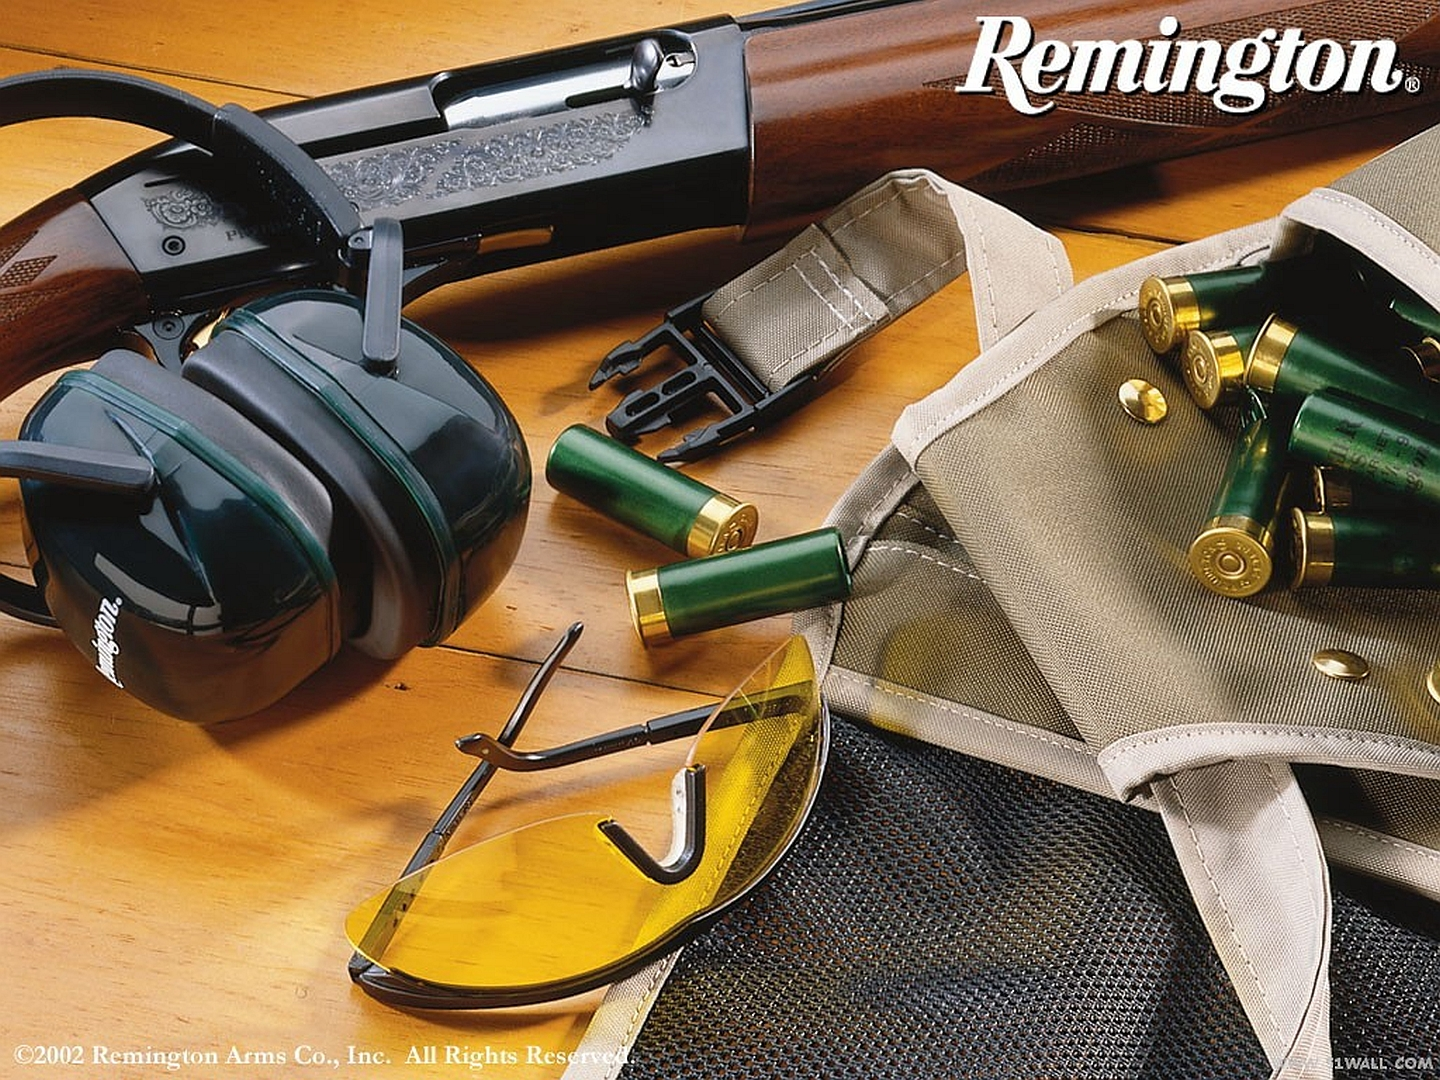 2 Remington Shotgun HD Wallpapers